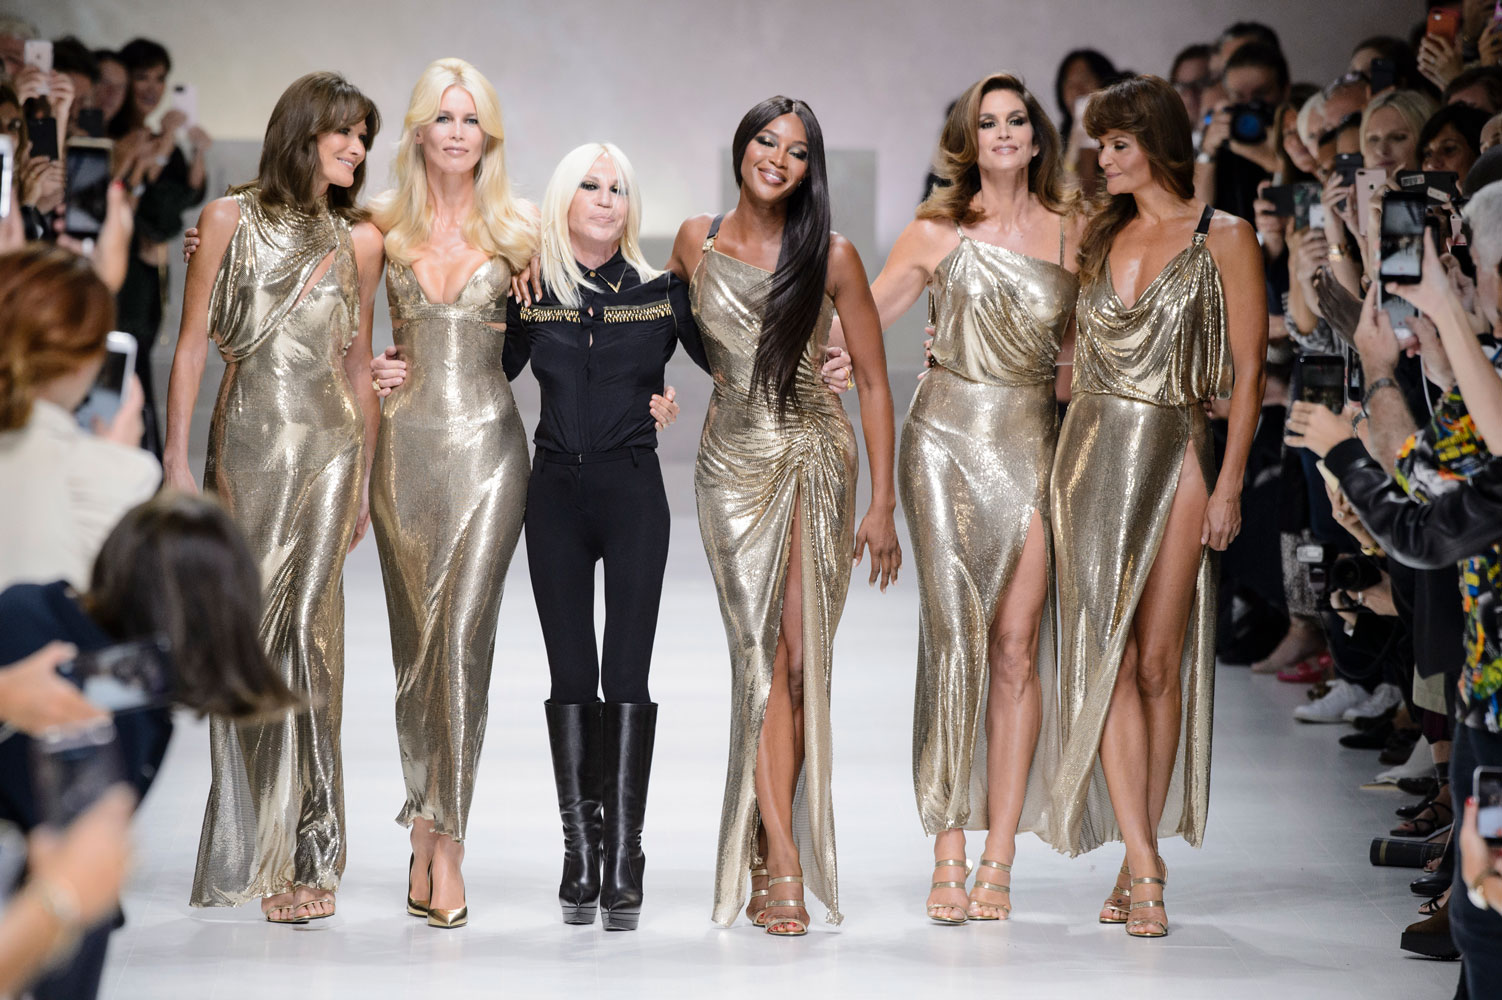 Carla Bruni, Claudia Schiffer, Naomi Campbell, Cindy Crawford and Helena Christensen join Donatella Versace for the Versace finale.